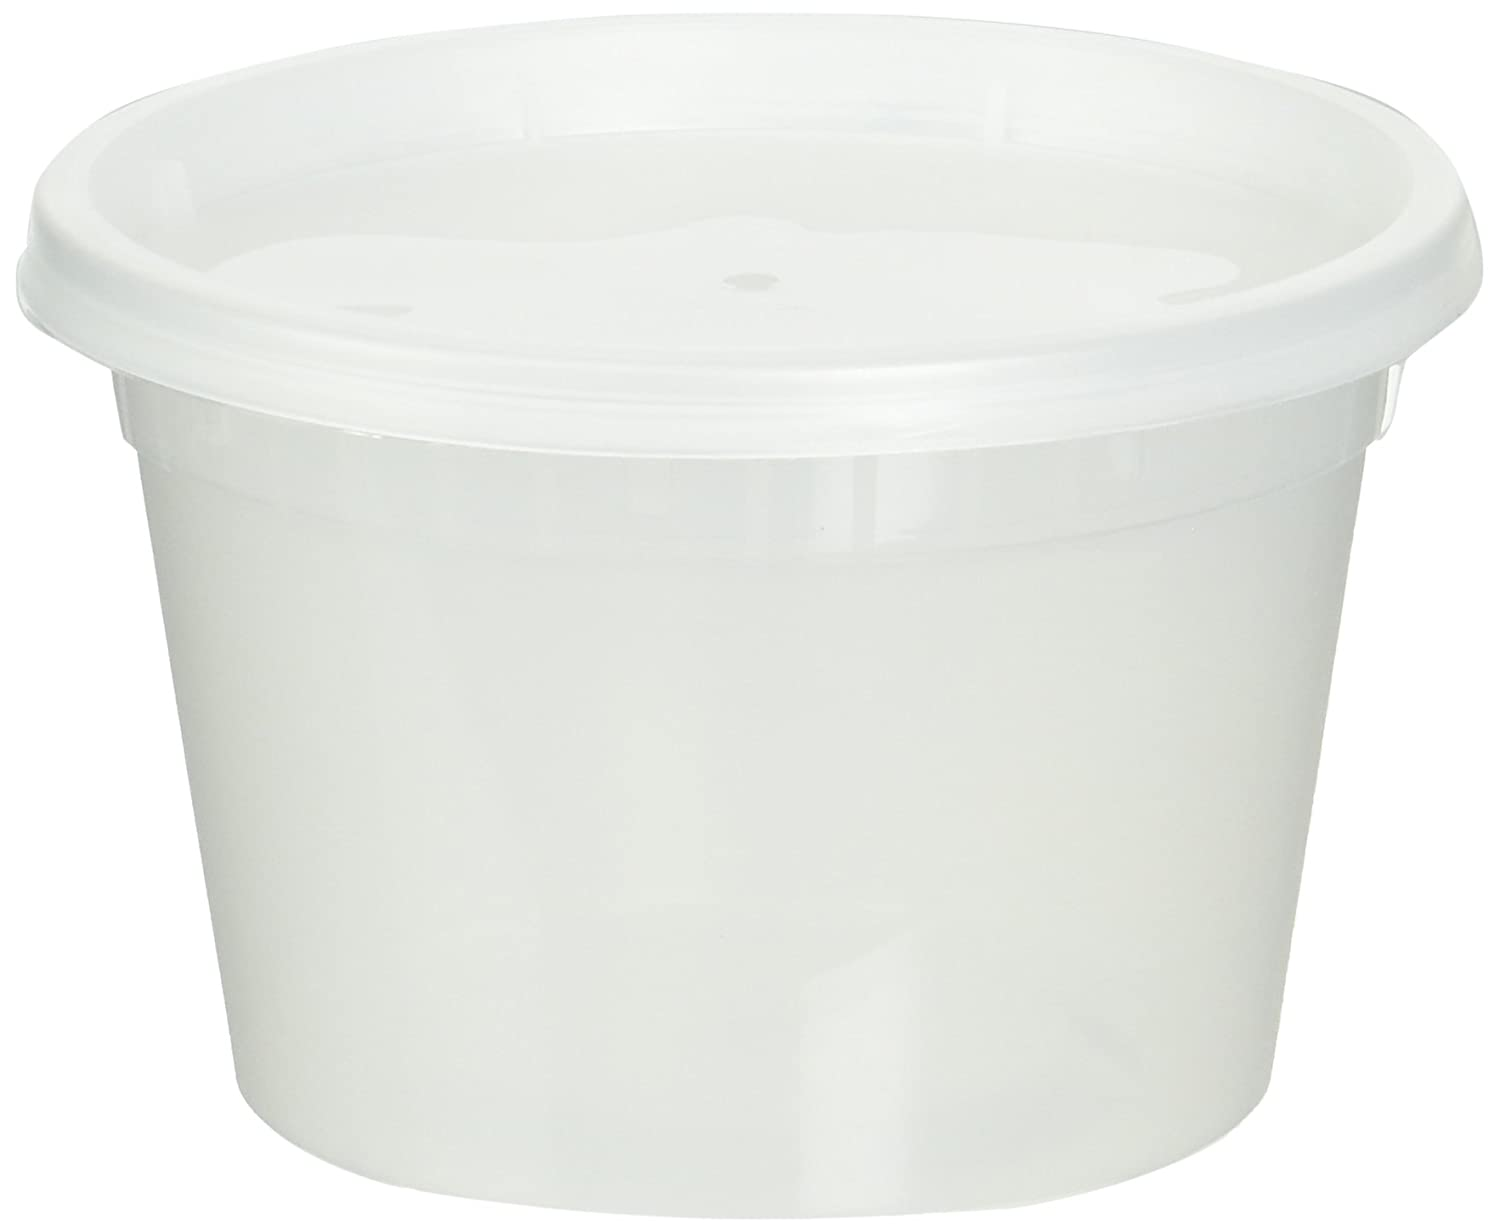 Reditainer Deli Food Storage Containers with Lid, 16-Ounce, 36-Pack RTRR3616